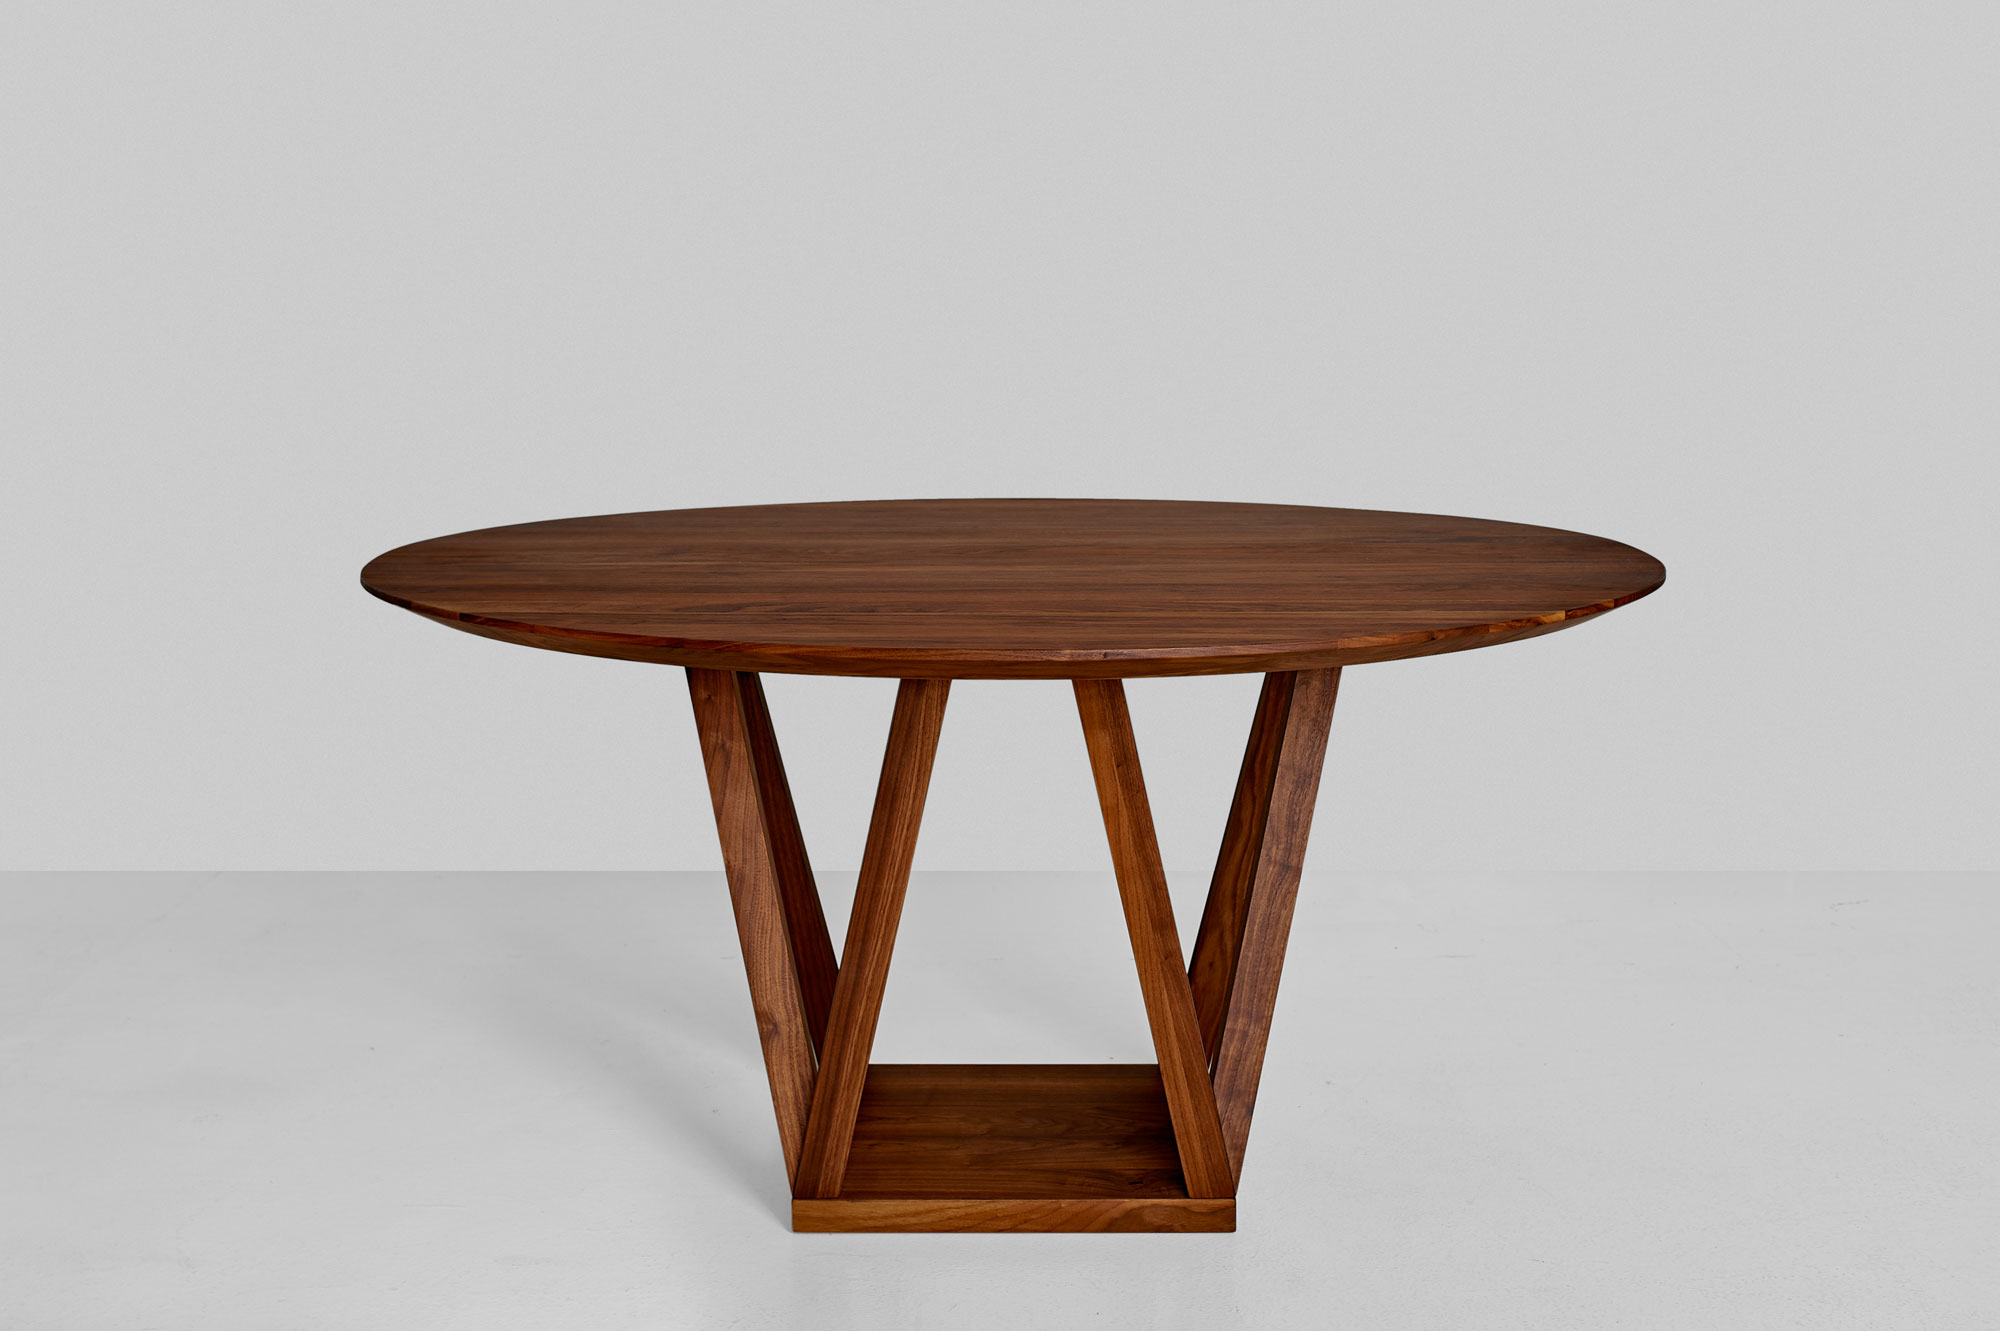 Linoleum Design Table CREO LINO 0988 custom made in solid wood by vitamin design